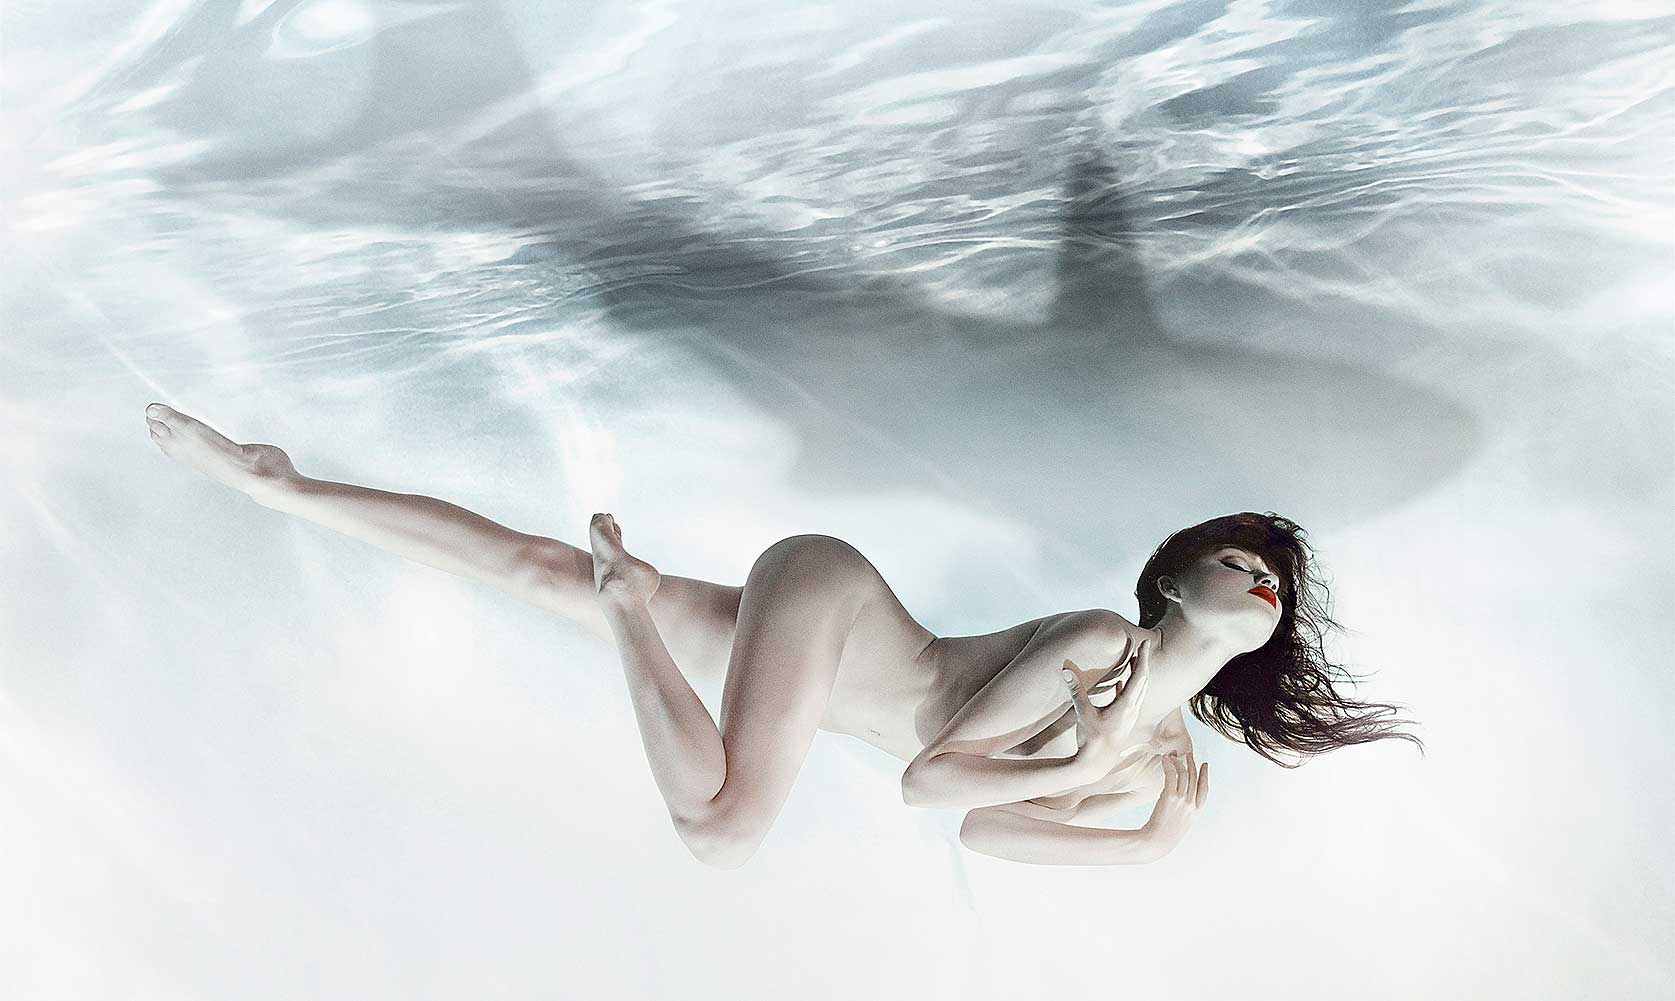 Underwater photography models